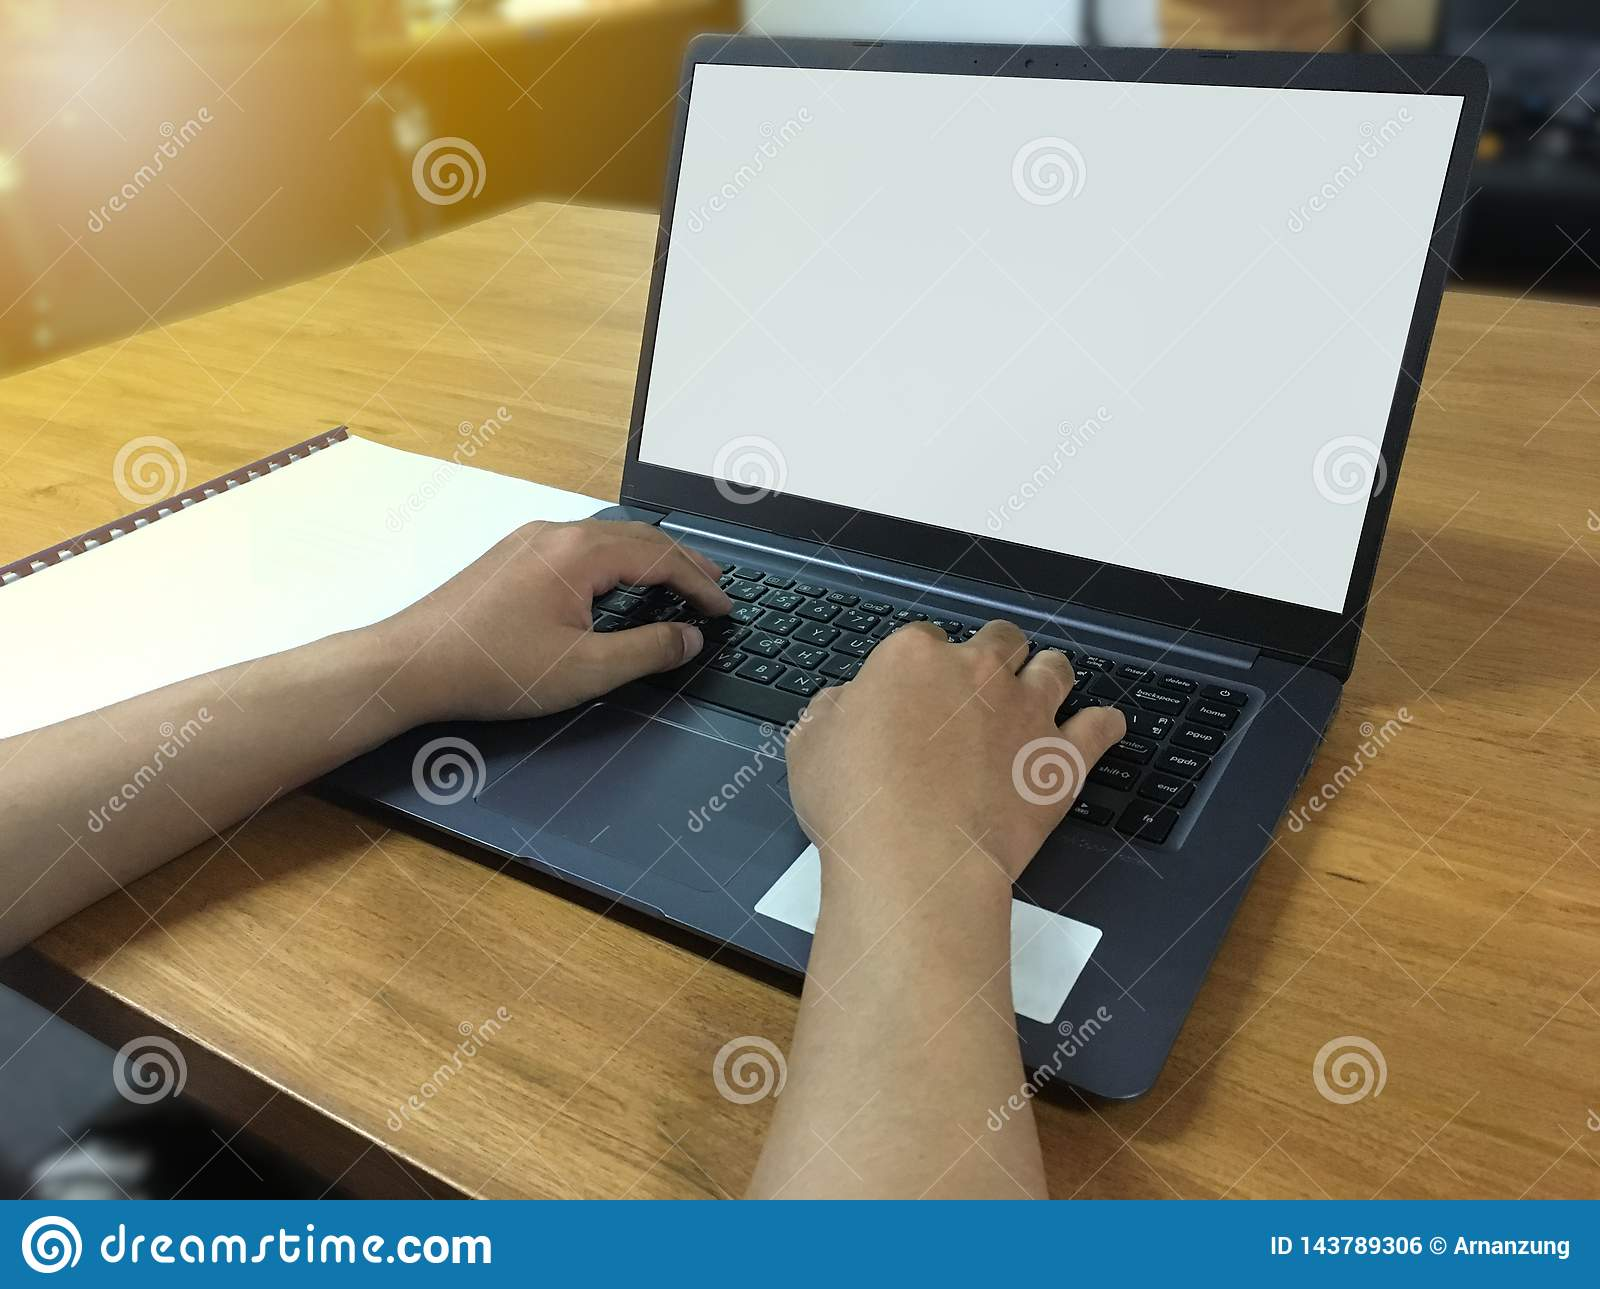 Hand Typing On Keyboard With Blank Screen Of Laptop And